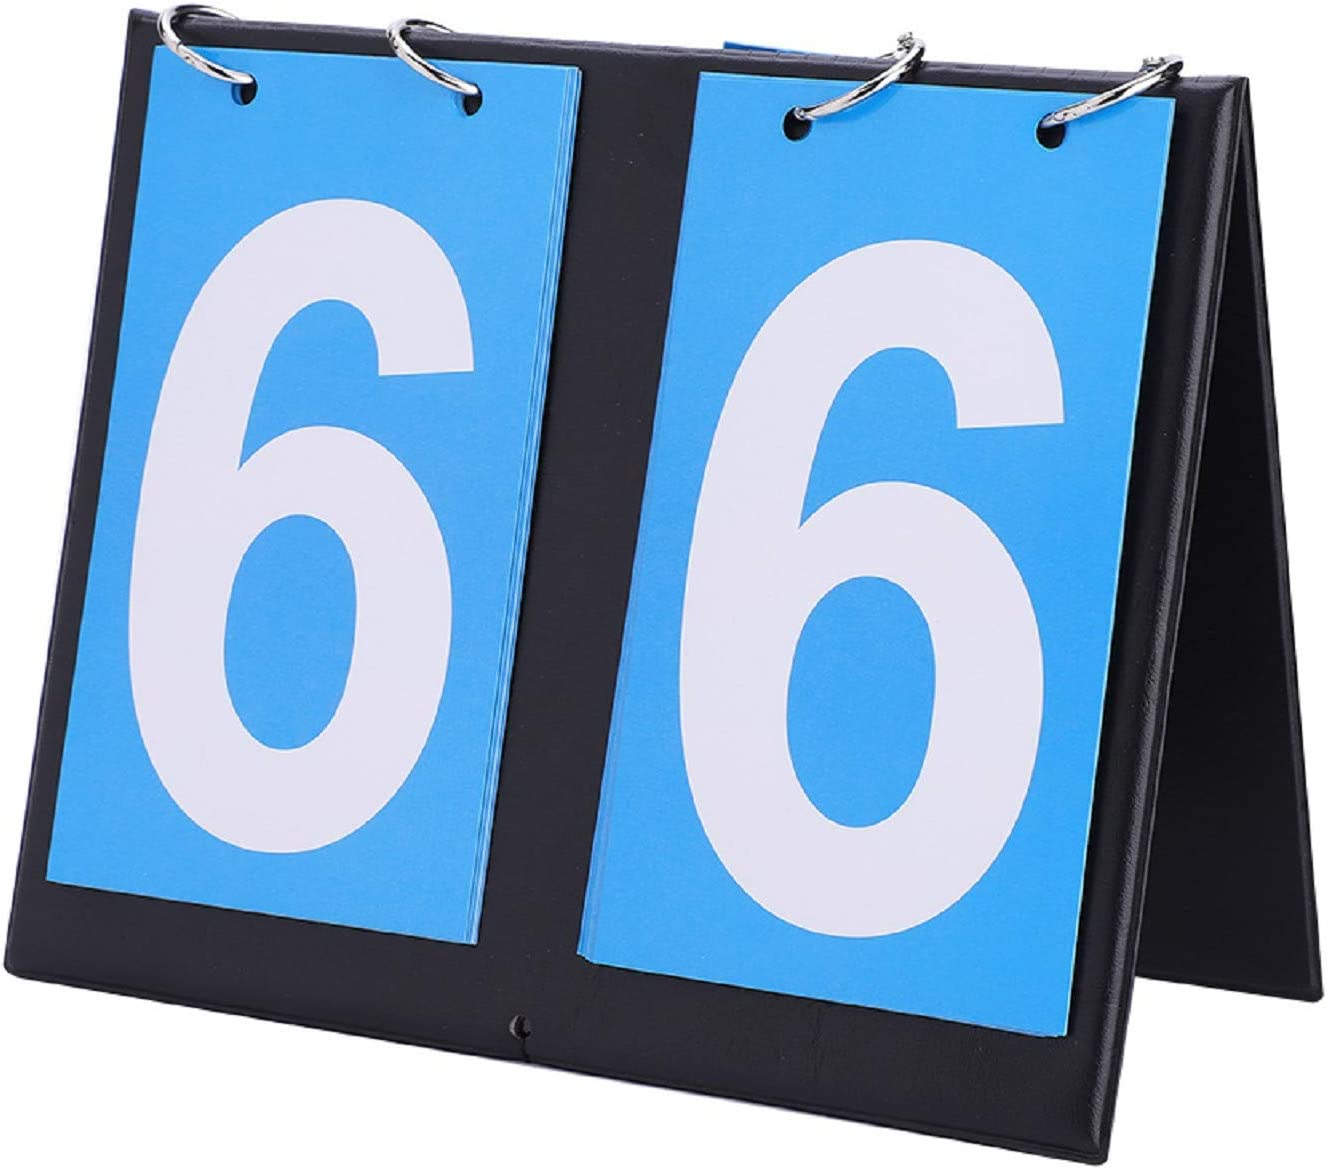 OhhGo 2 3 4 Digit Portable Score Free shipping on posting reviews Counter Scoreboard Sports Flip Max 75% OFF